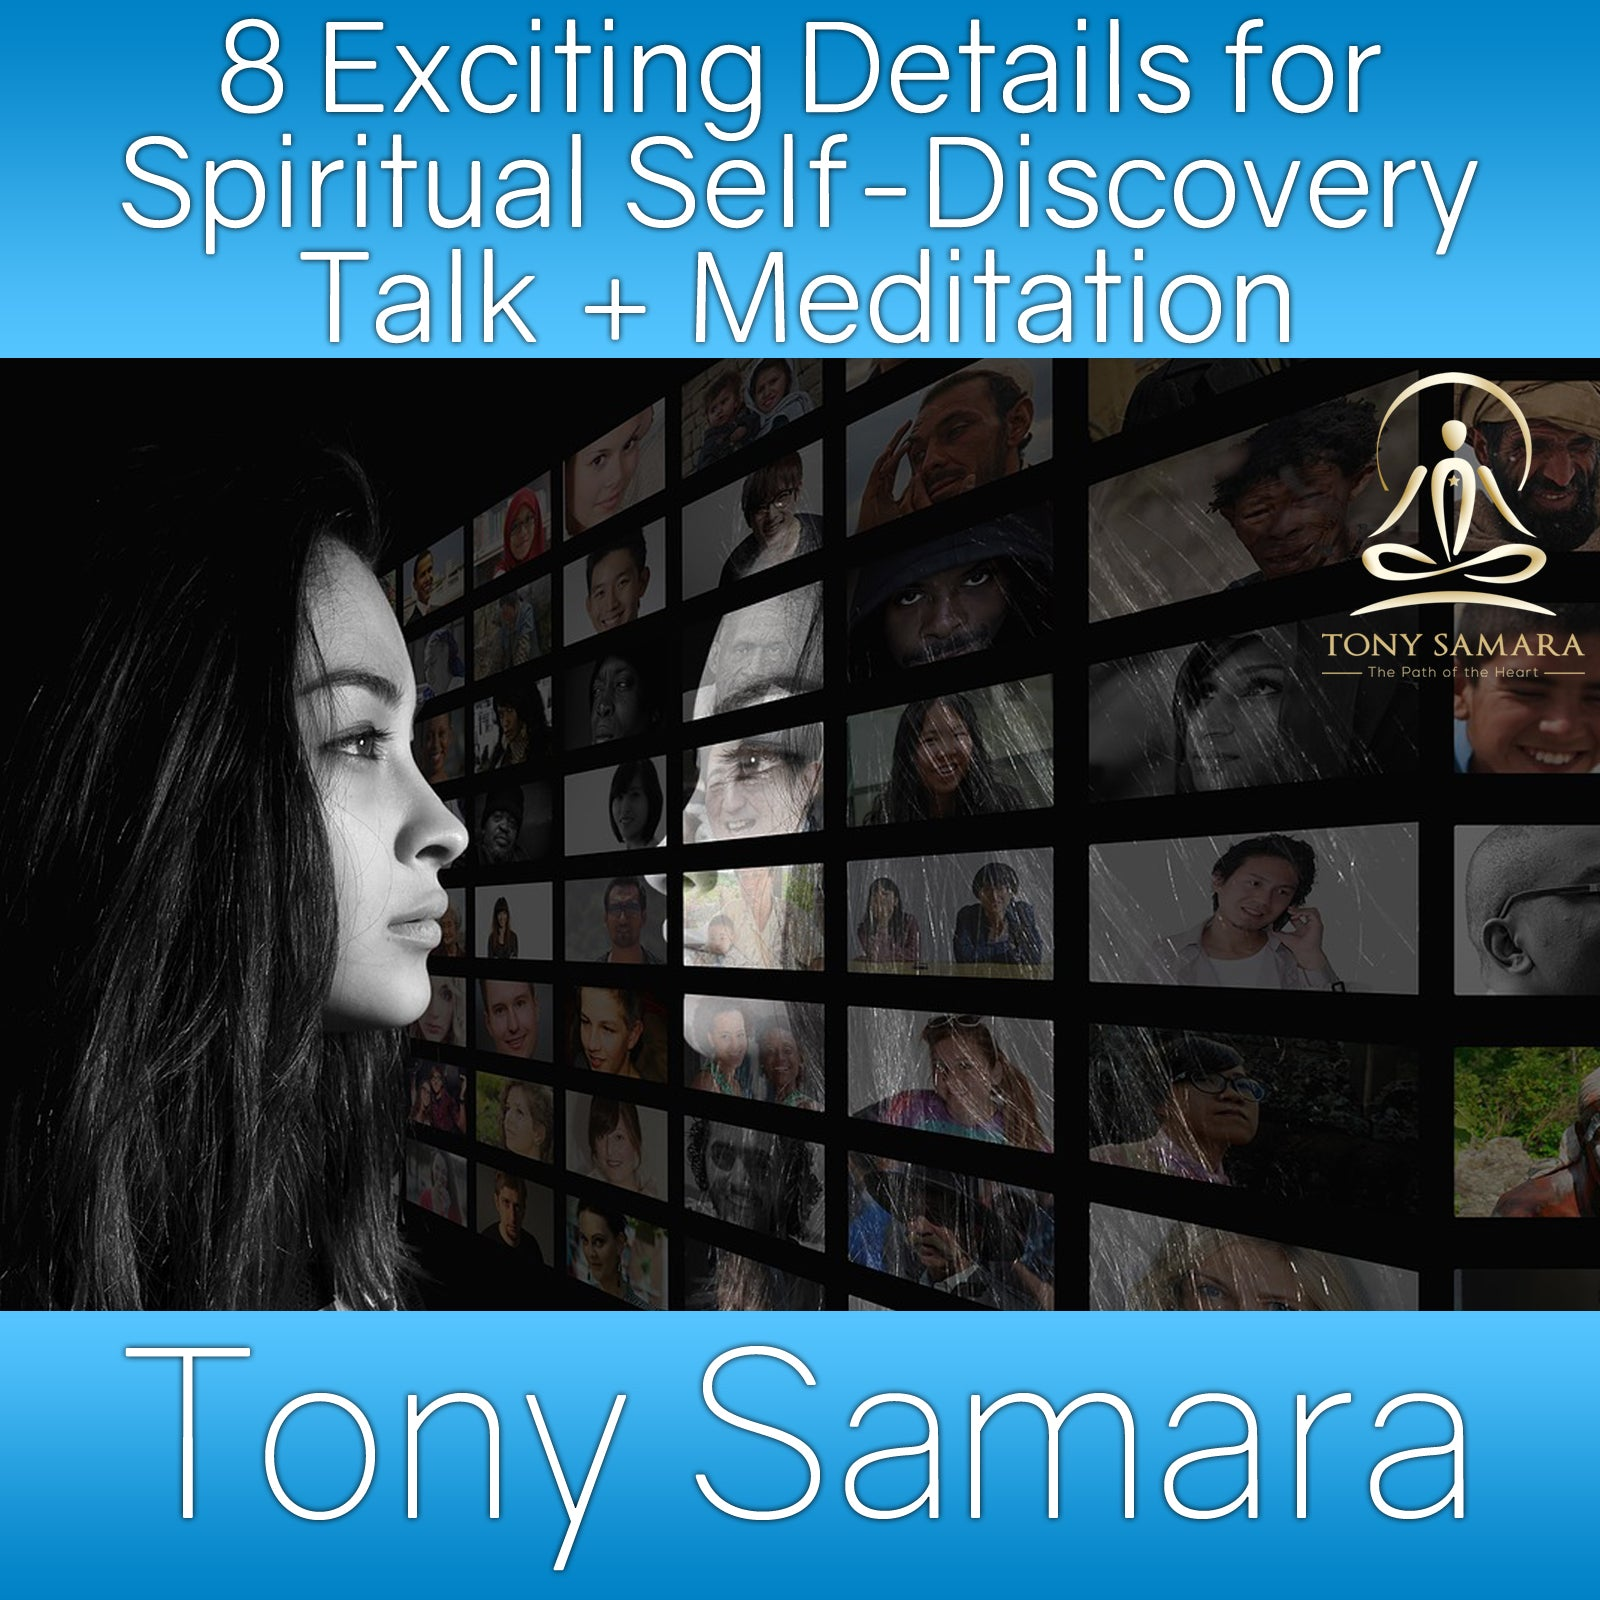 8 Exciting Details for Spiritual Self-Discovery Talk + Meditation (MP3 Audio Download) - Tony Samara Meditation